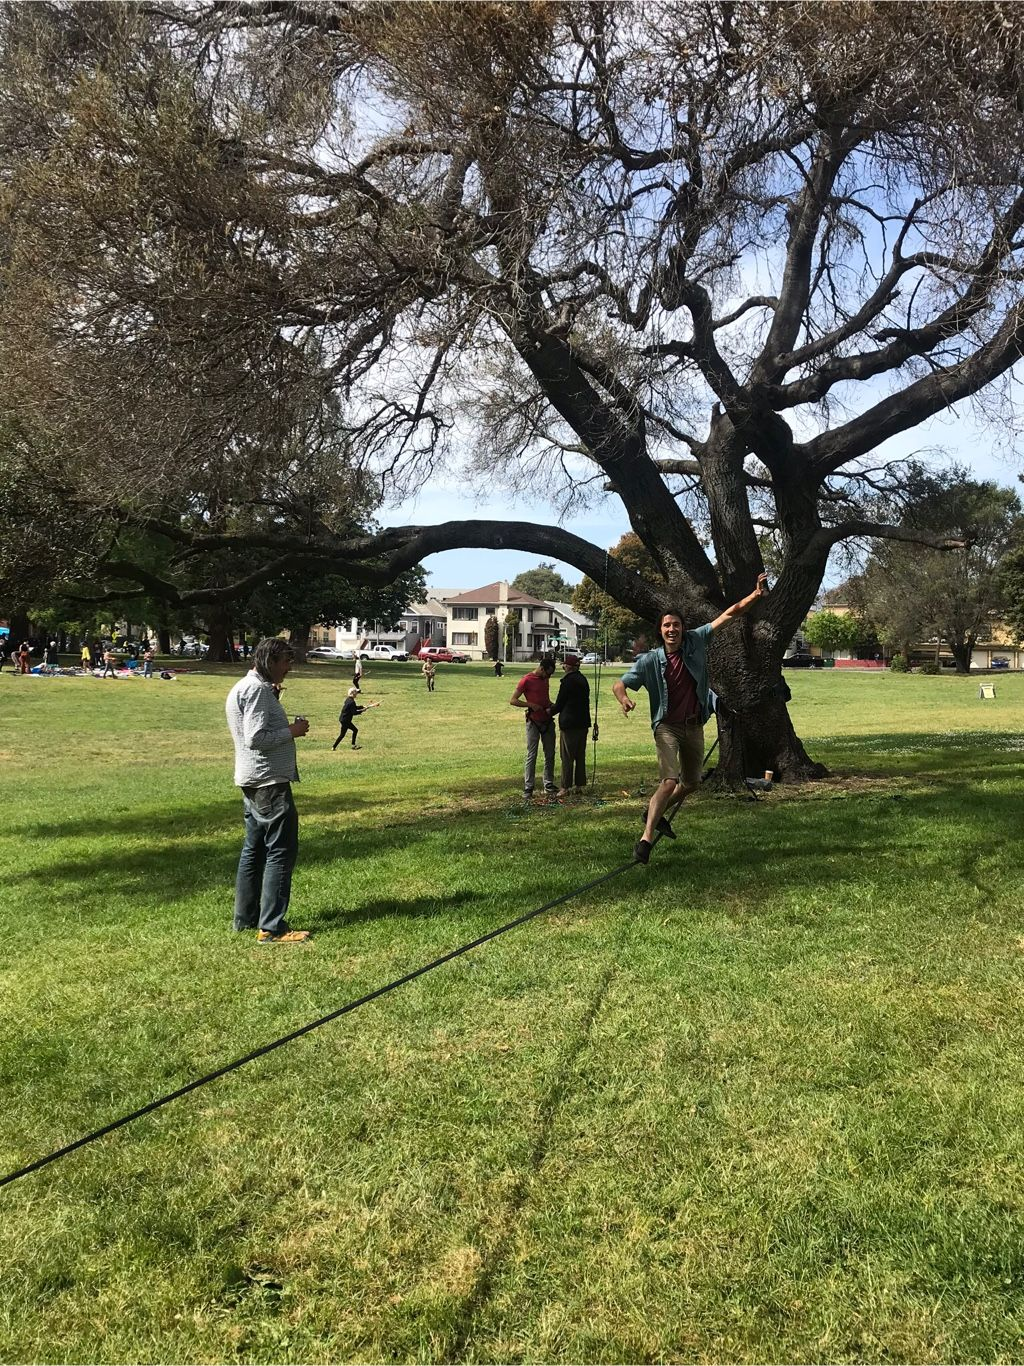 Grant on the slackline